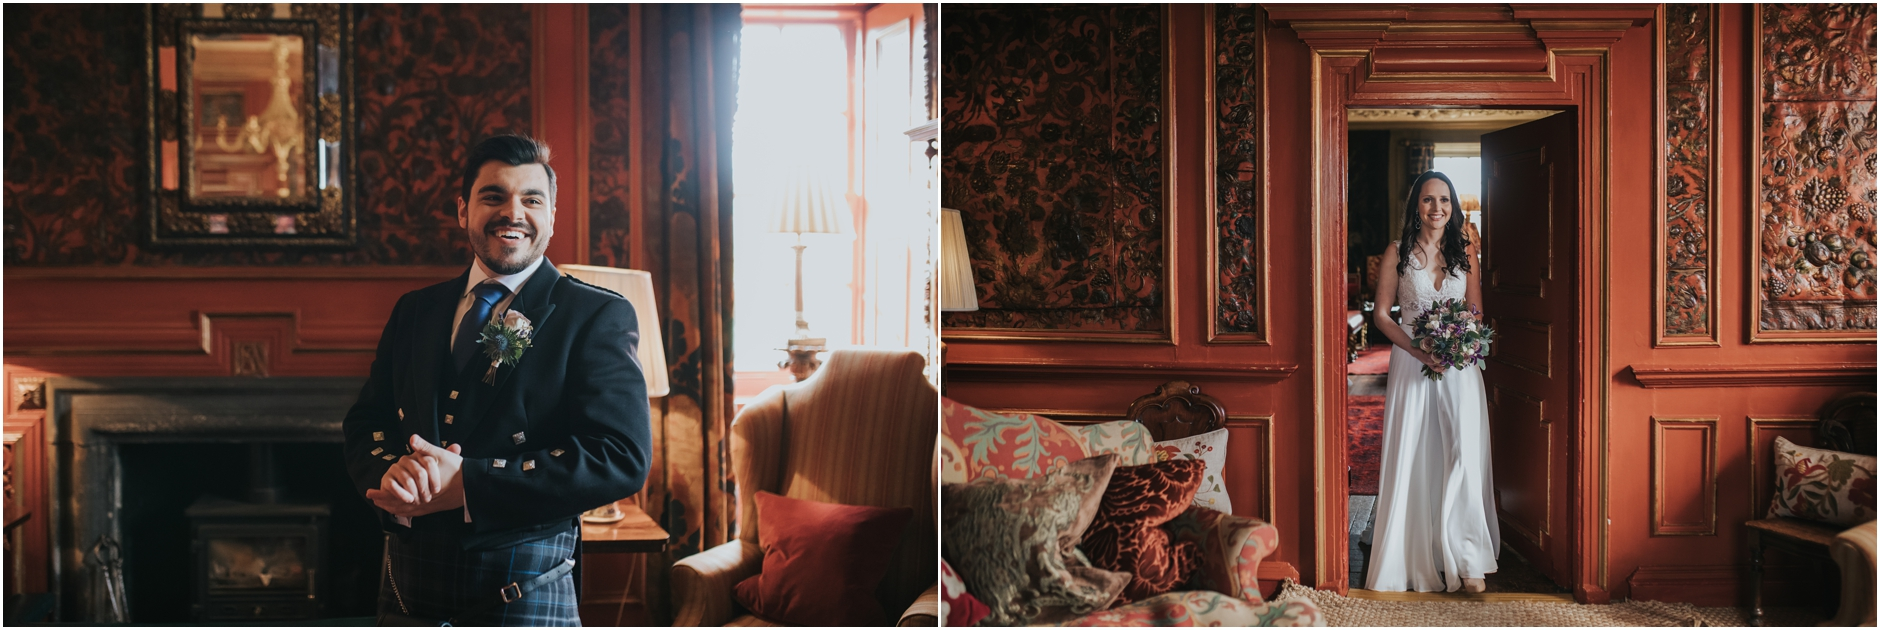 prestonfield house elopement edinburgh wedding photographer